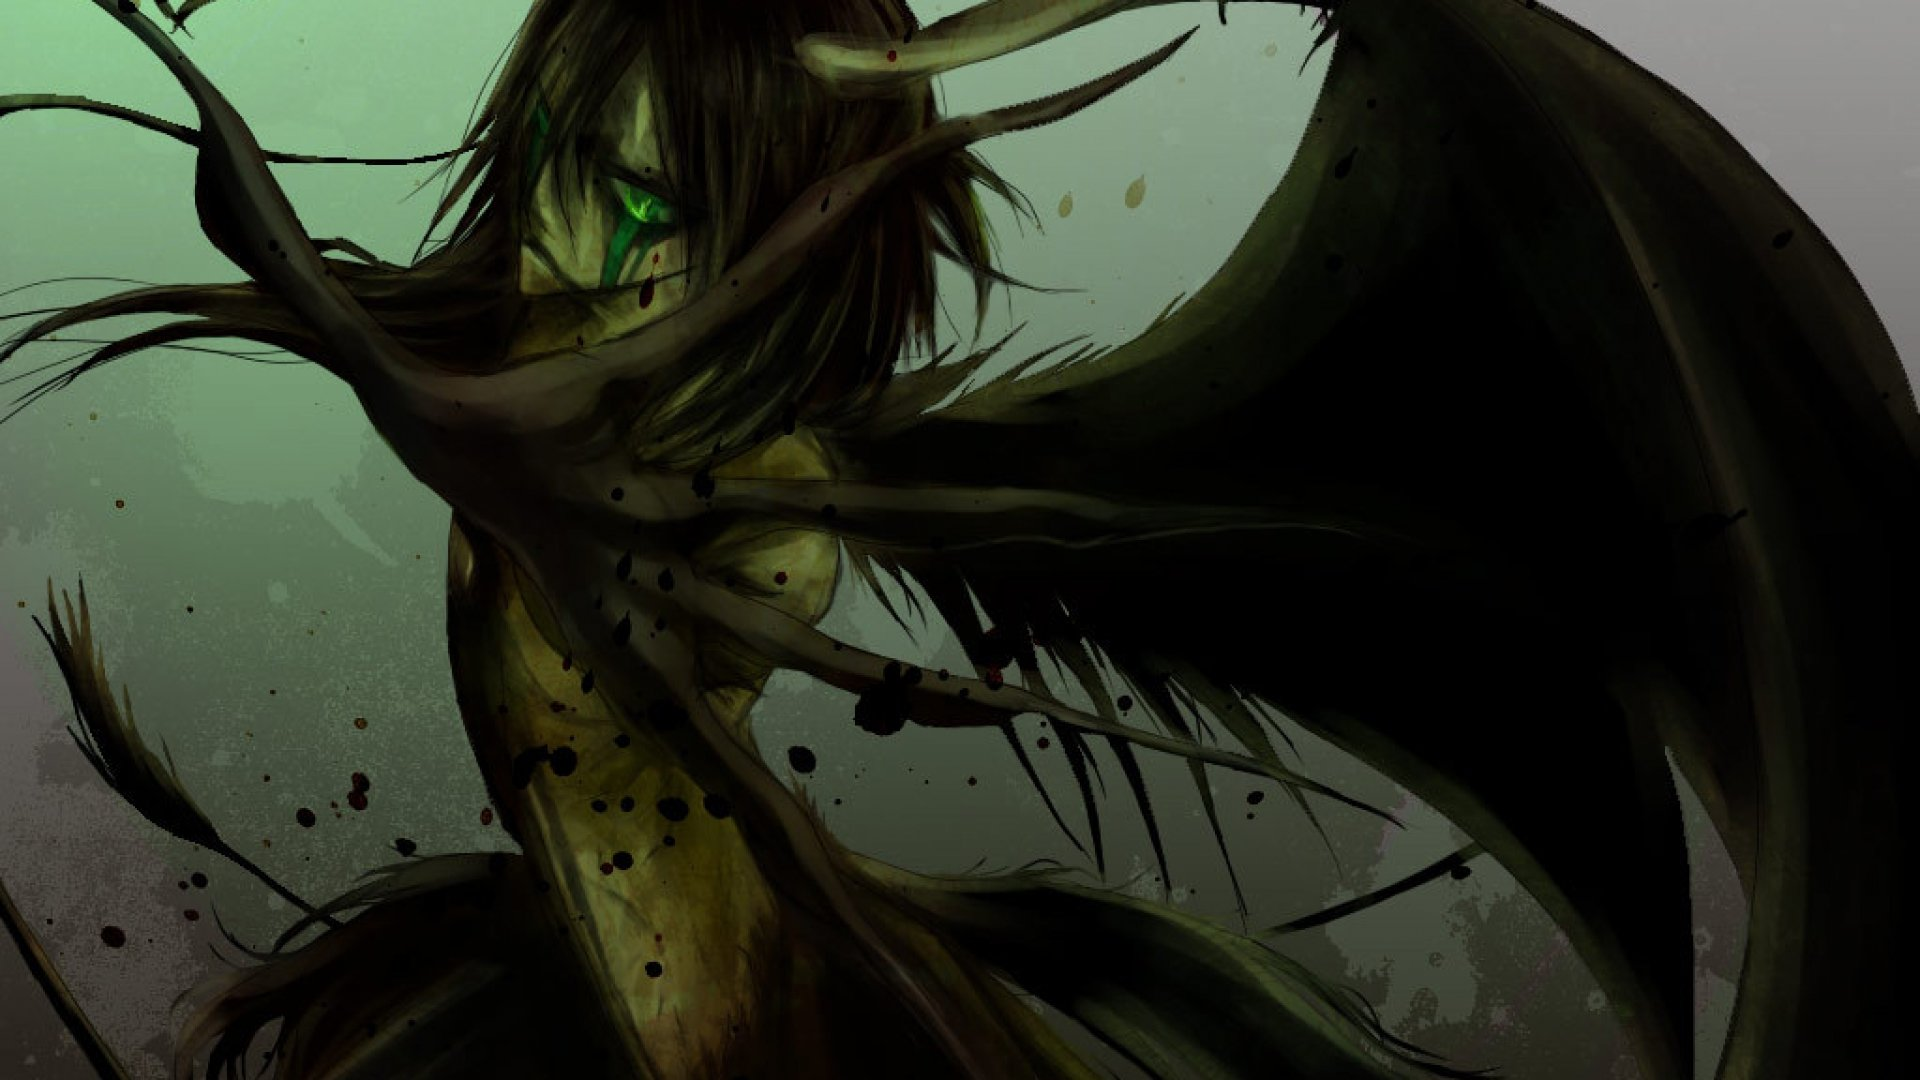 Download hd 1080p Ulquiorra Cifer PC background ID:419304 for free